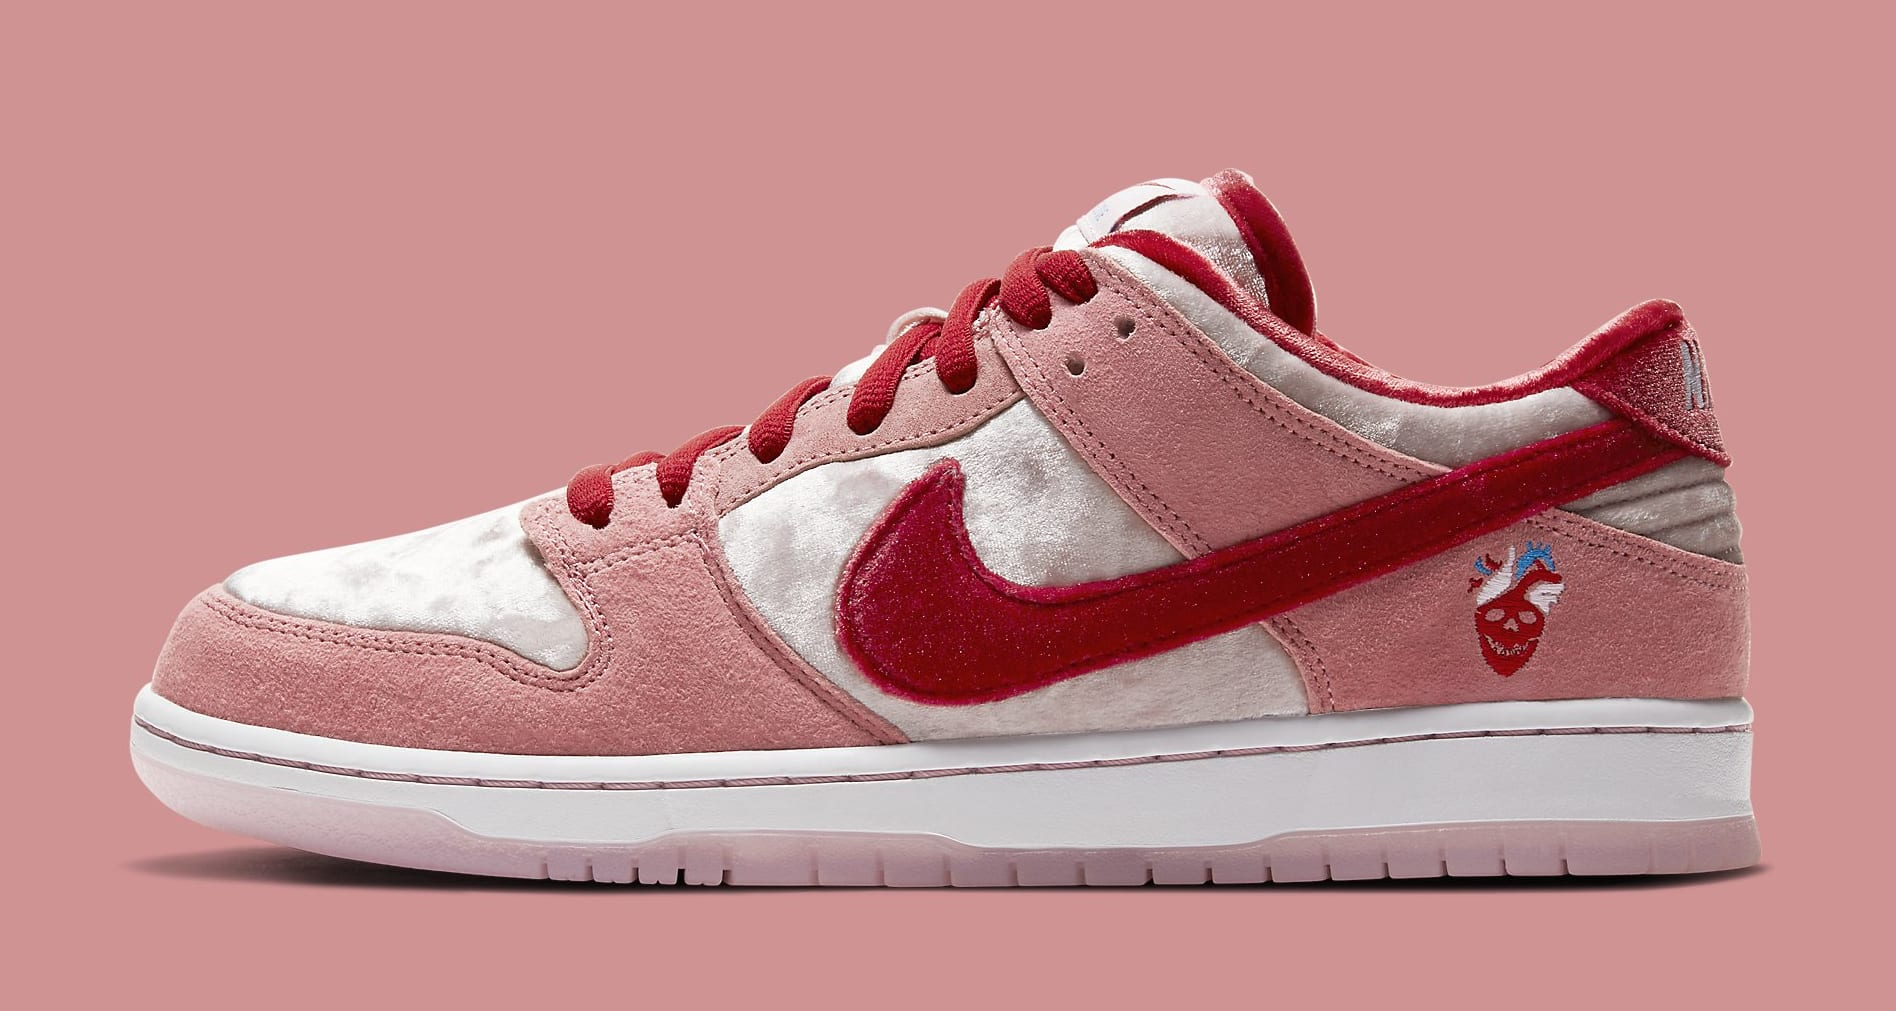 strangelove-nike-sb-dunk-low-ct2552-800-lateral